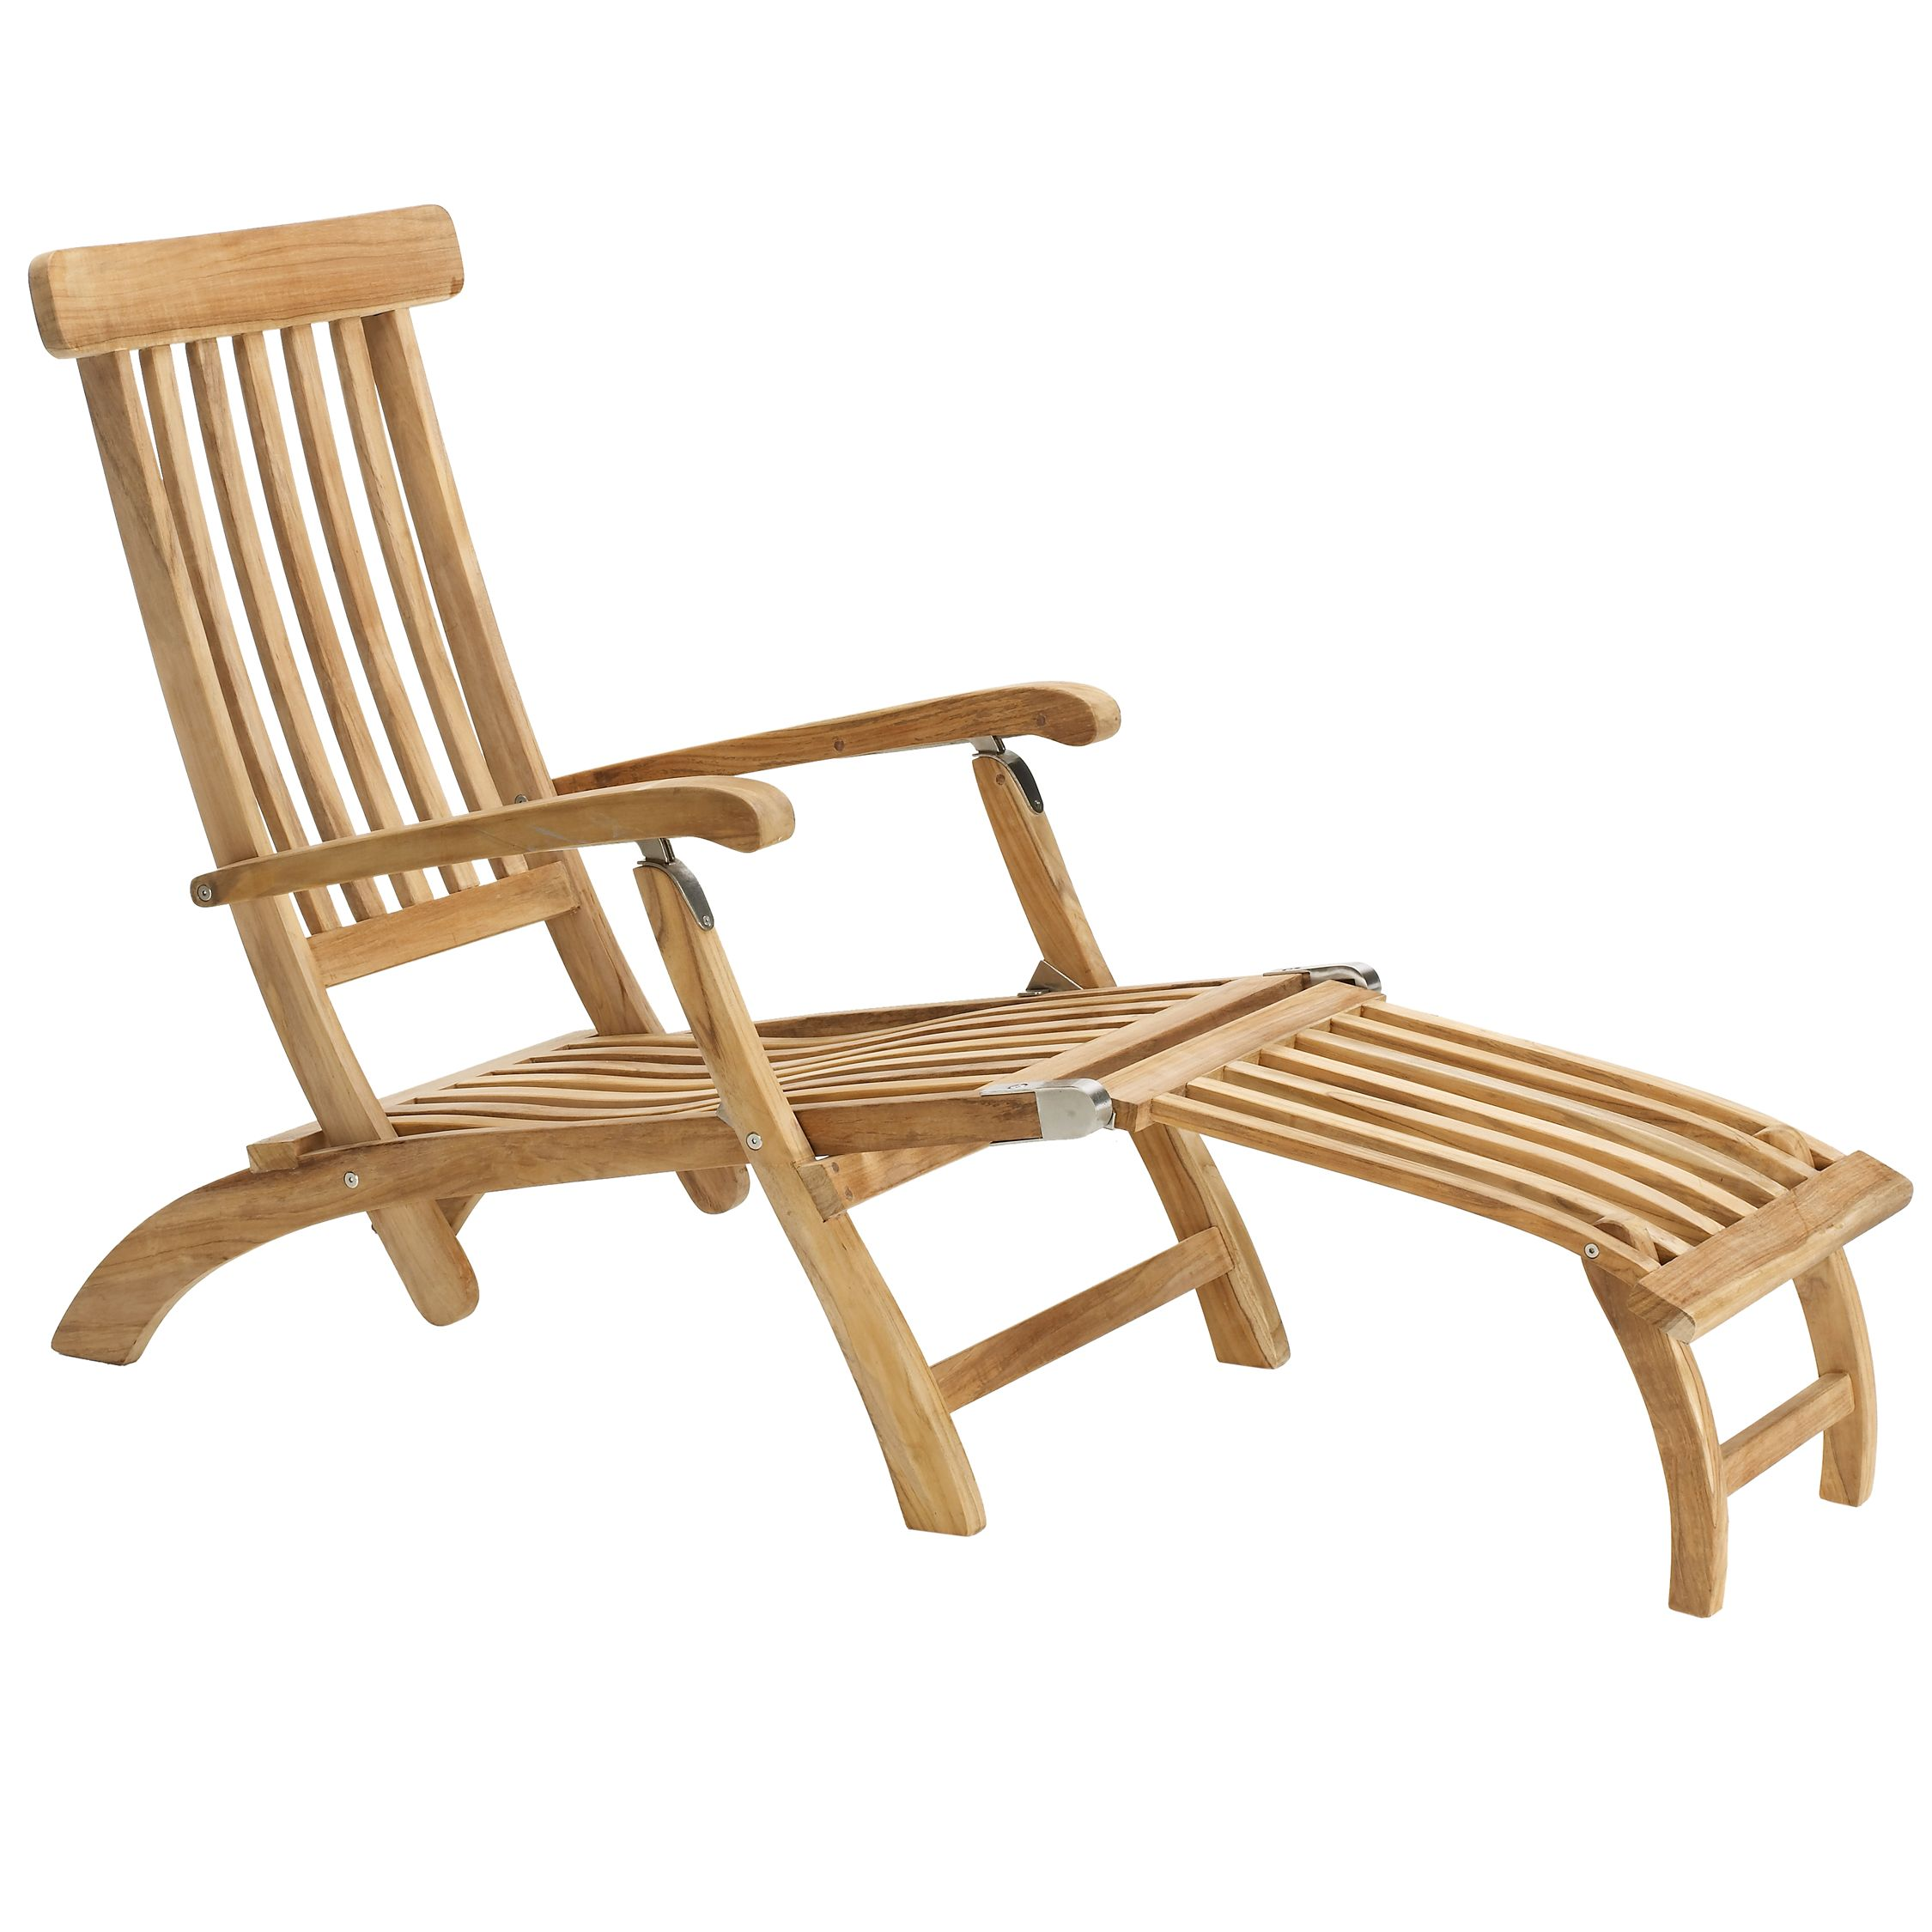 John Lewis Outdoor Steamer Chair